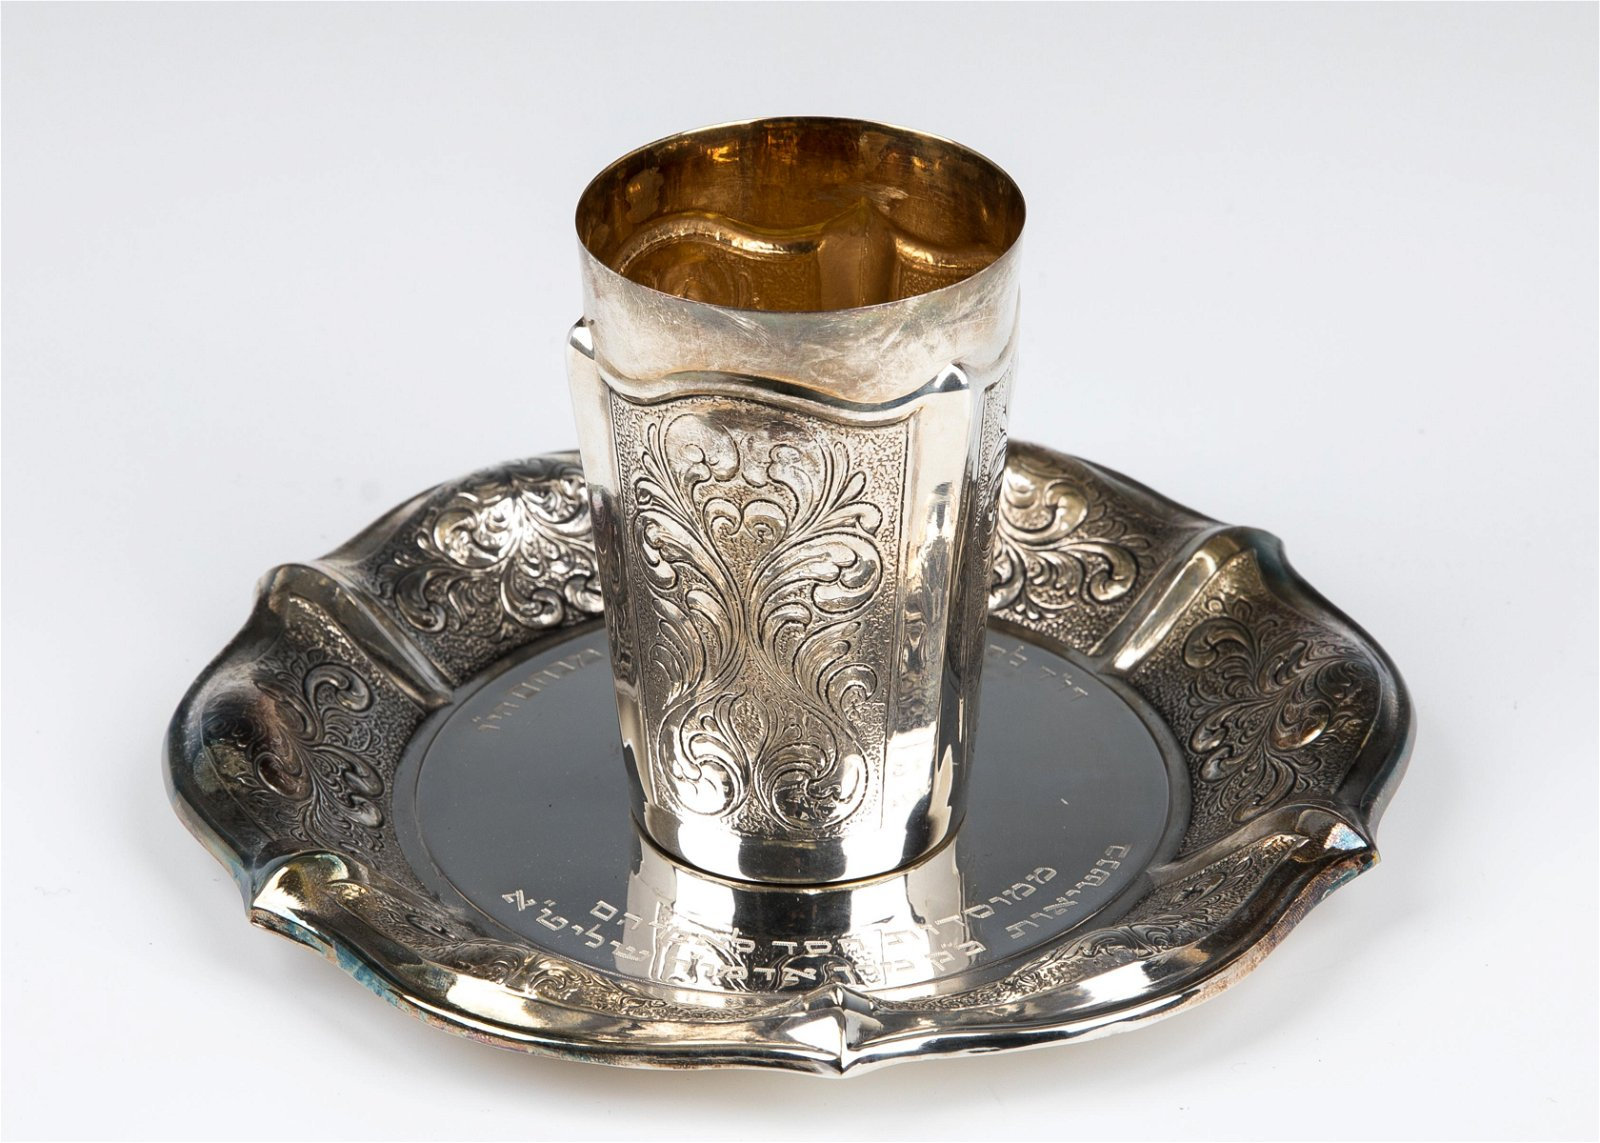 A STERLING SILVER KIDDUSH CUP WITH UNDERPLATE. Probably